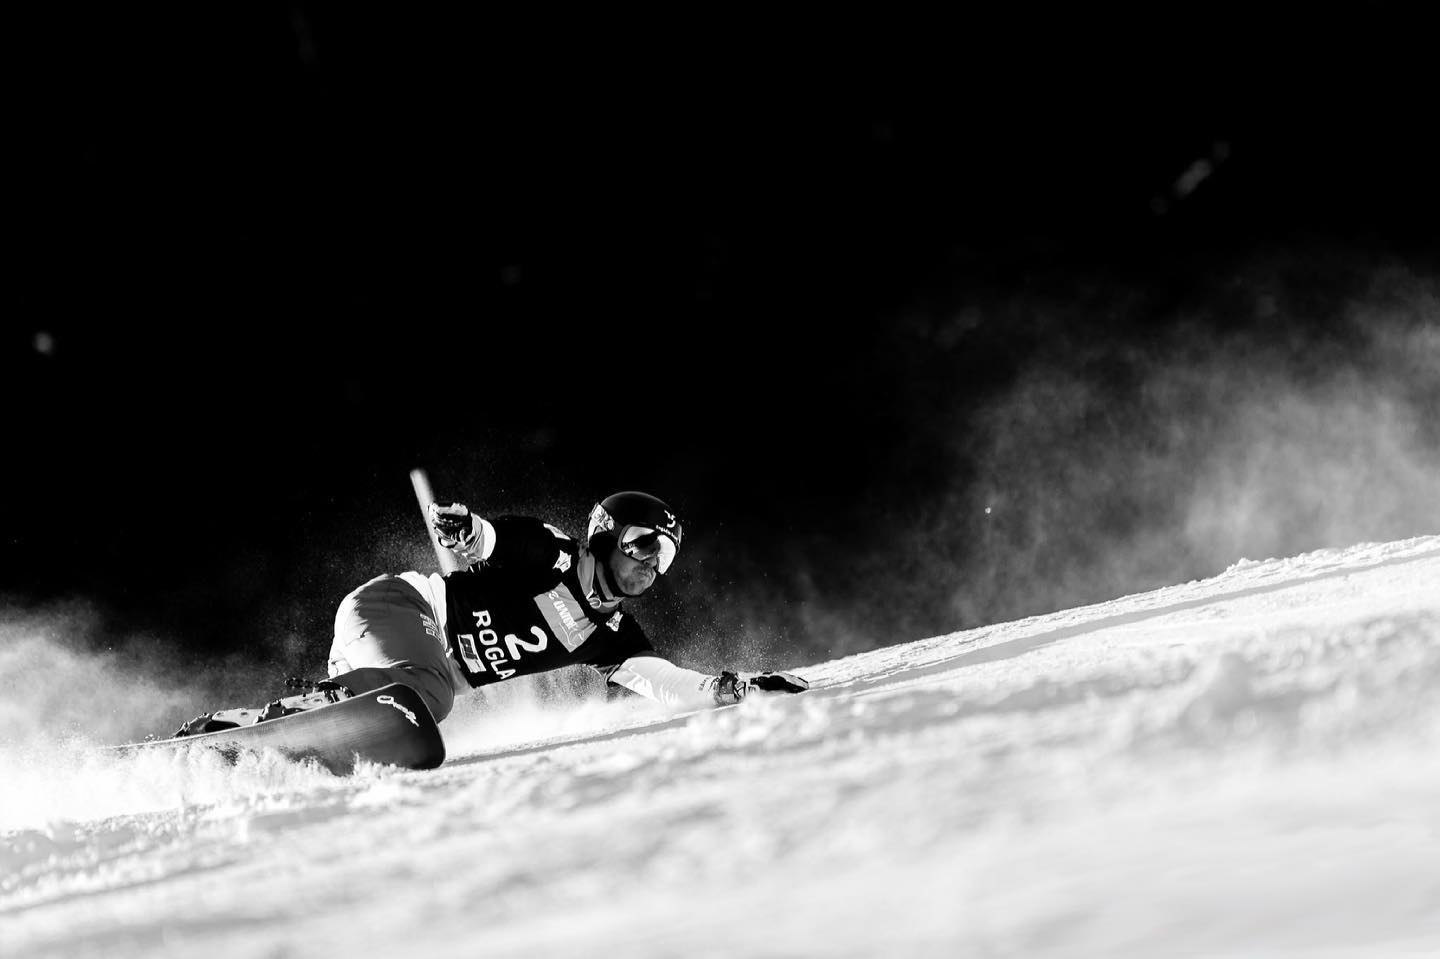 In five days on Monday and Tuesday it's time in @rogla2021 🤘🏽 . I look forward to race on the slope where I won my first @fissnowboard Worldcup 🏼 . This banger shot is from that special race in 2017 🖤🤍